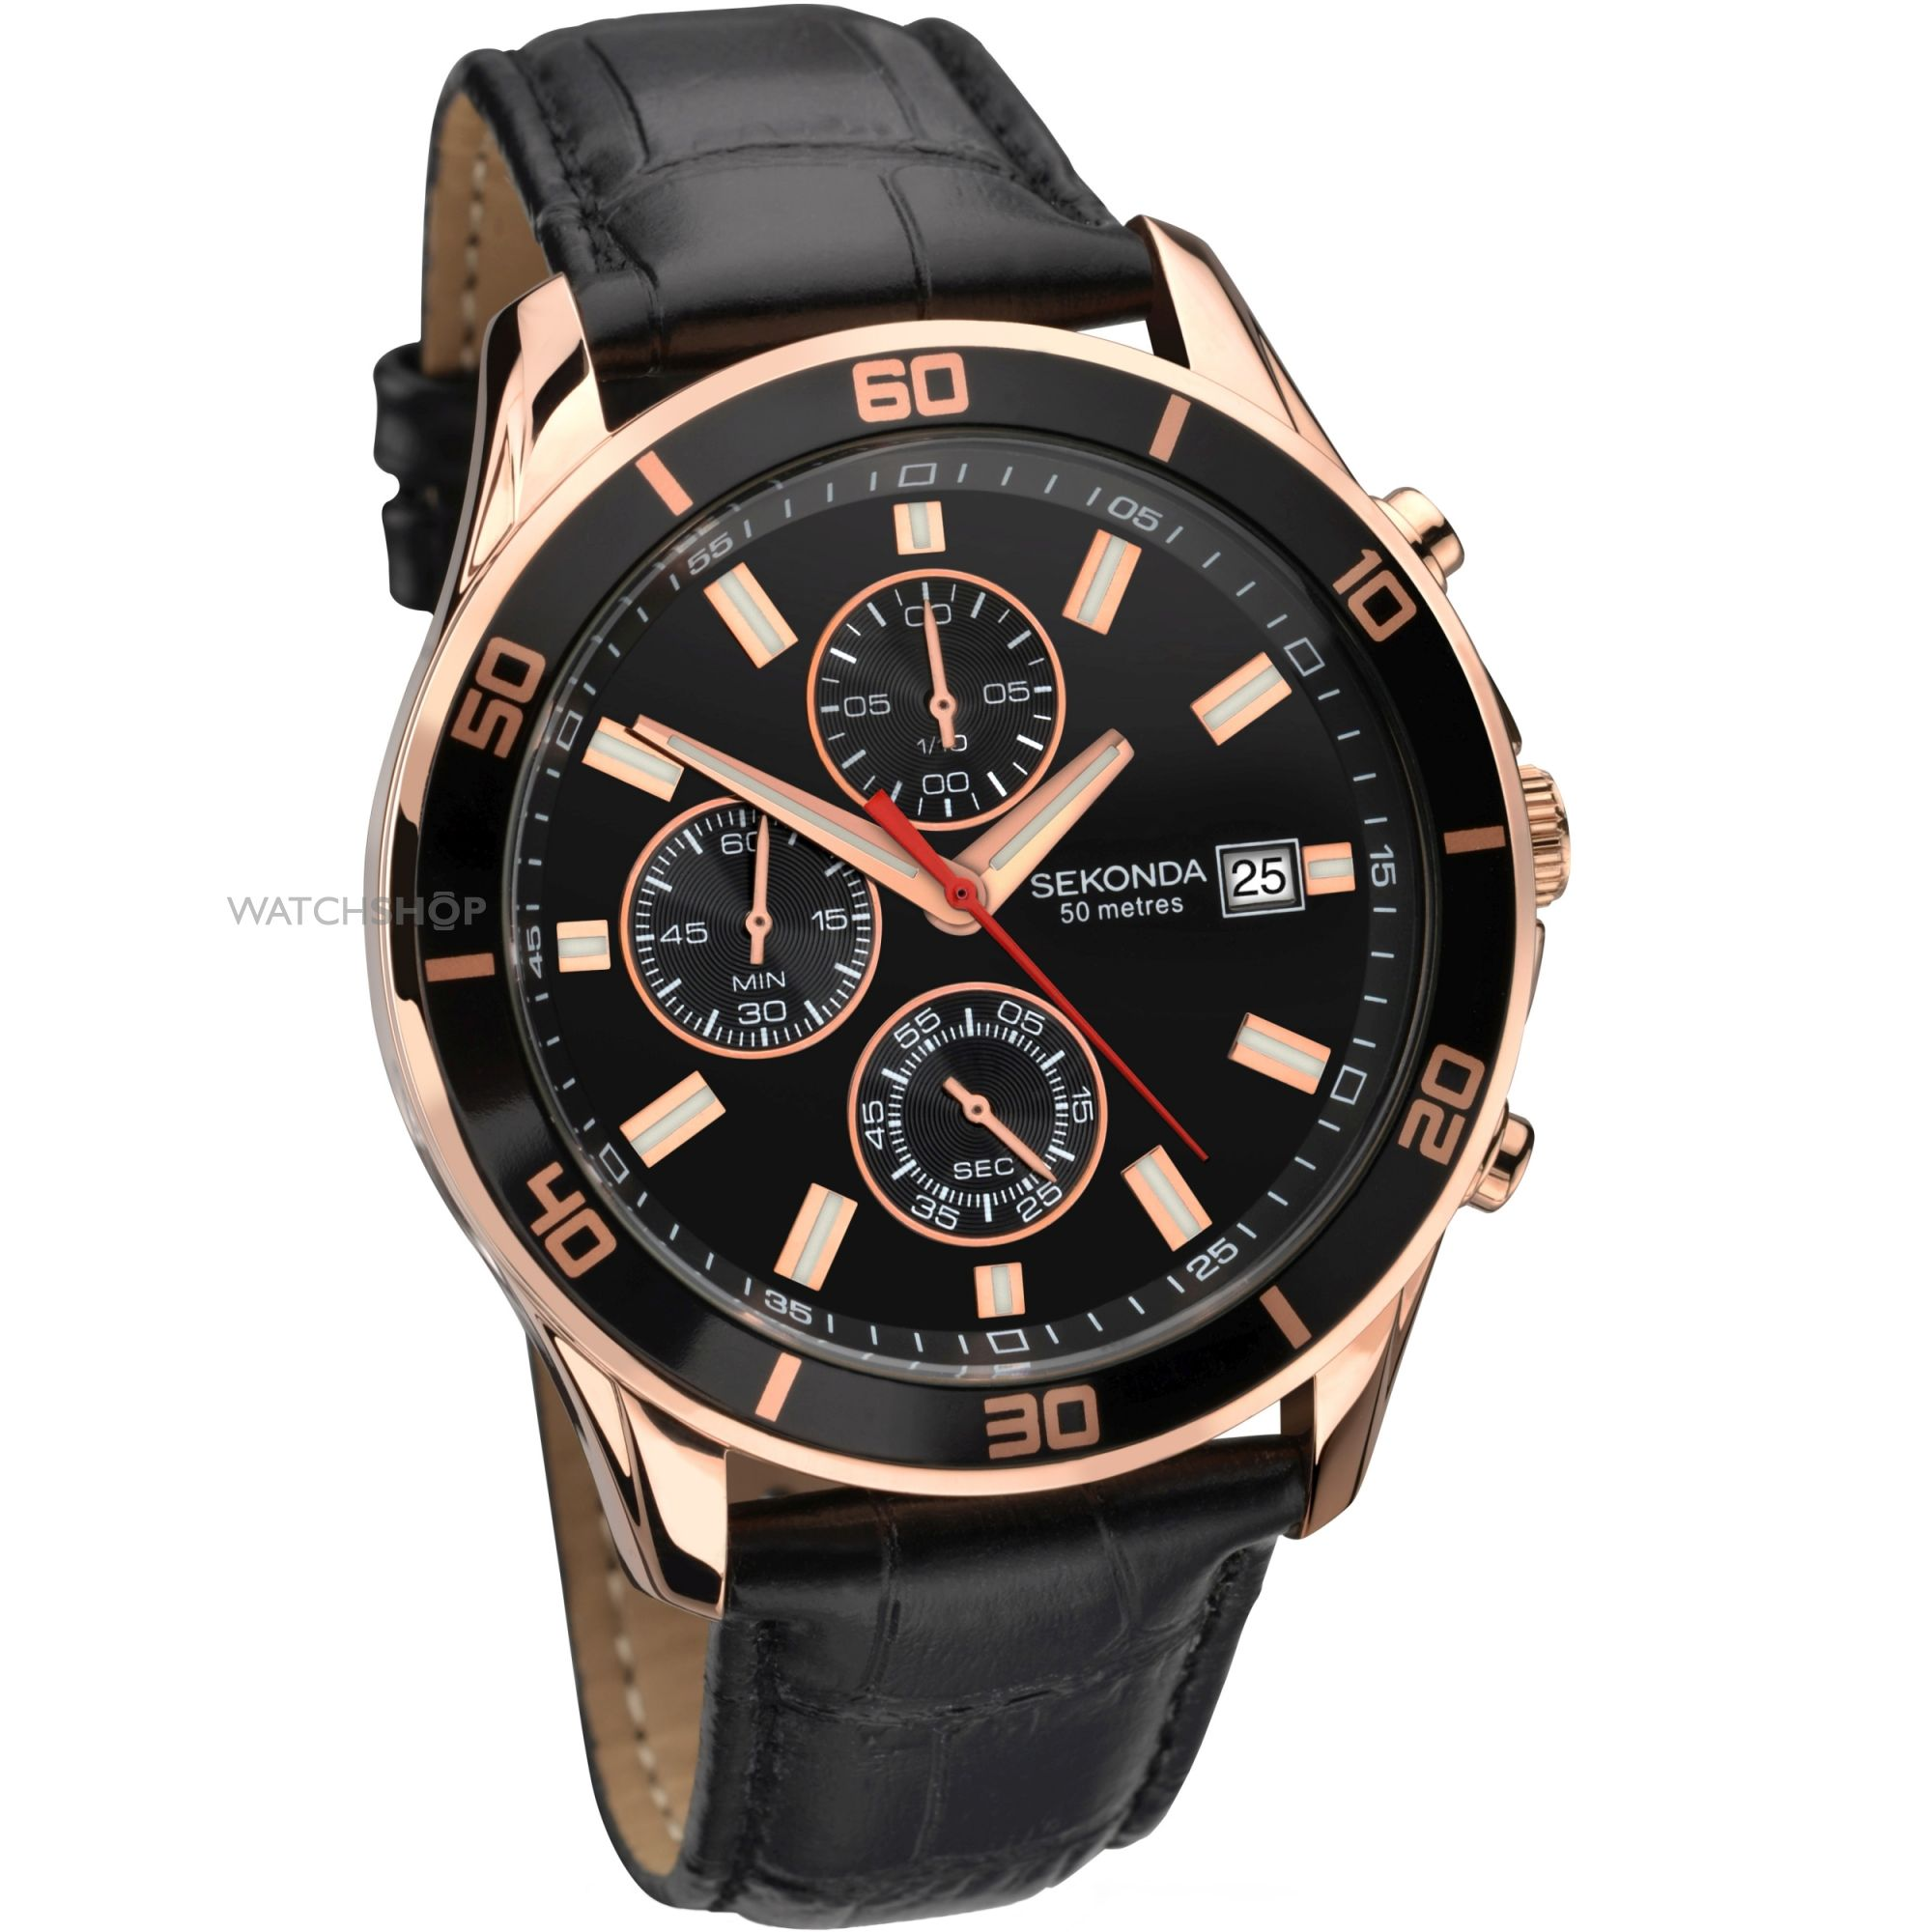 decker brands pc best perucci in wrist lowest offers by original price analog pricing june flipkartrs watches